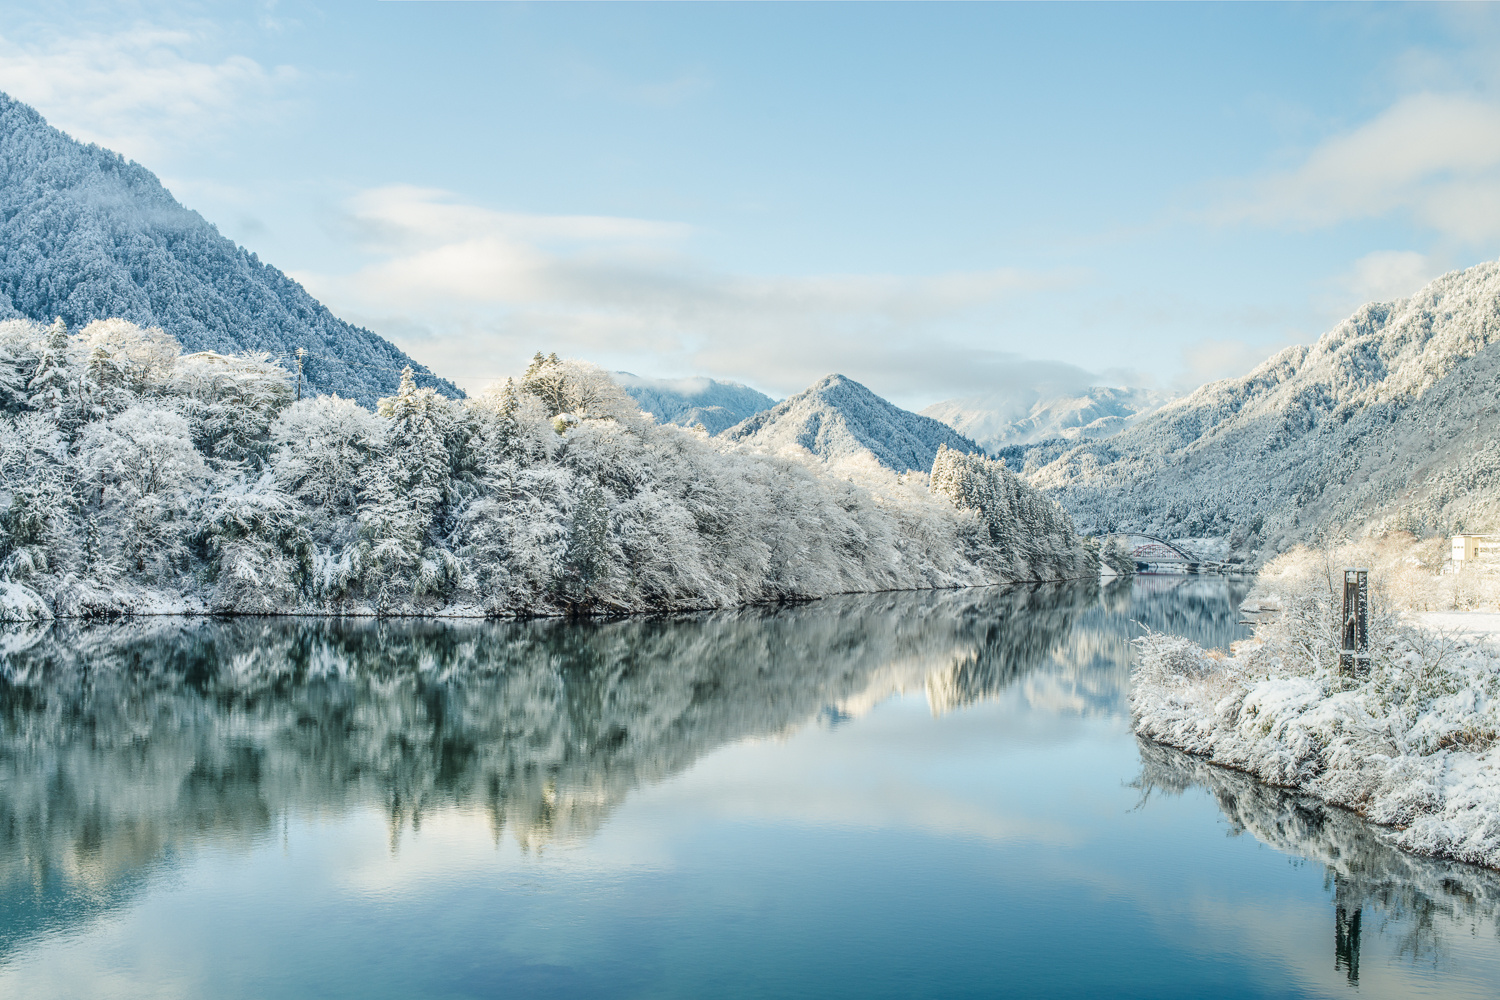 River Kiso with snowy mountains by Masahiro Ikeda